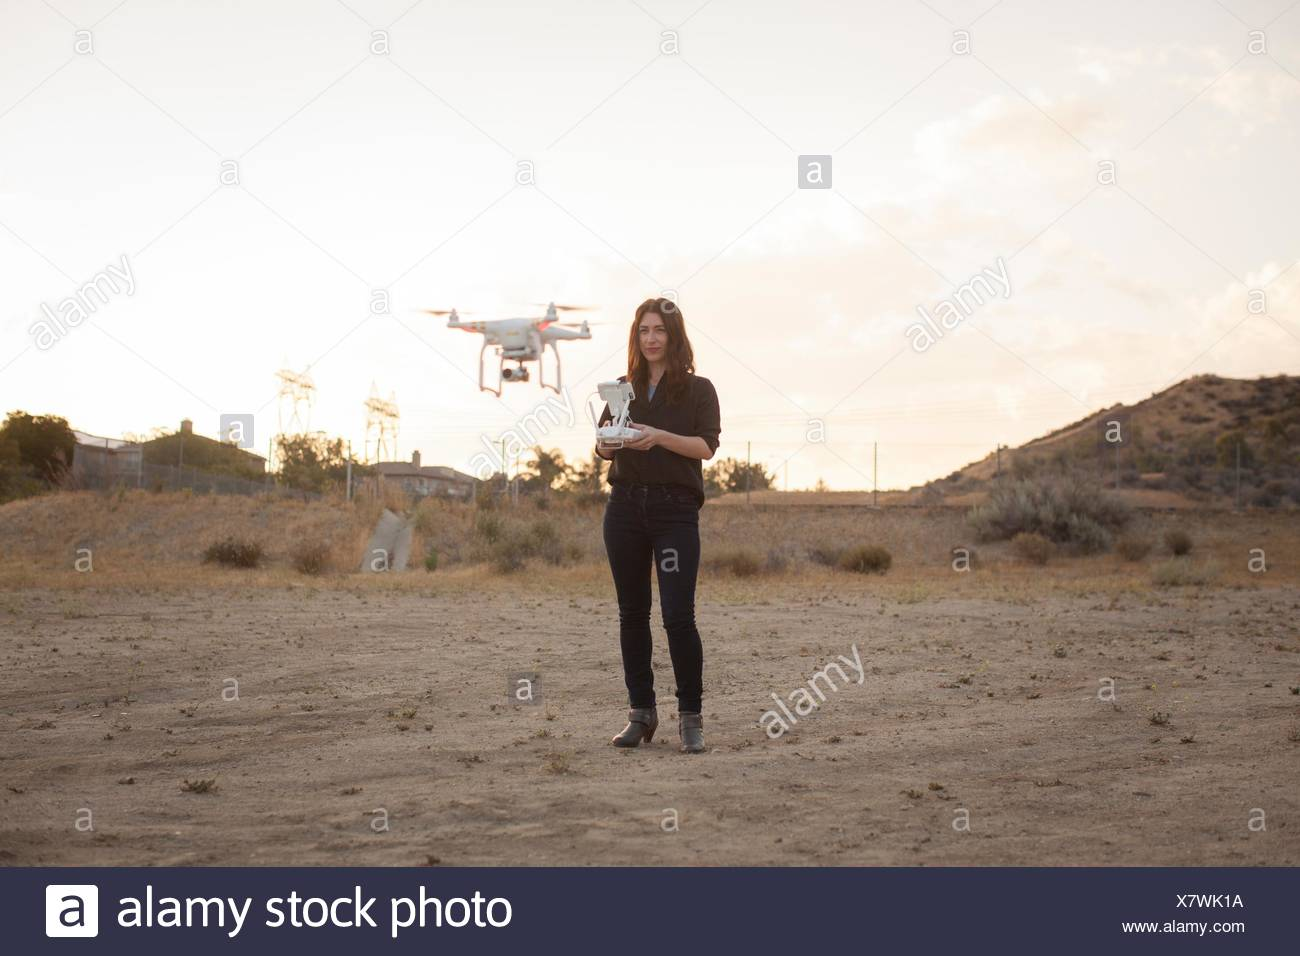 Female commercial operator on scrubland flying drone, Santa Clarita, California, USA Stock Photo